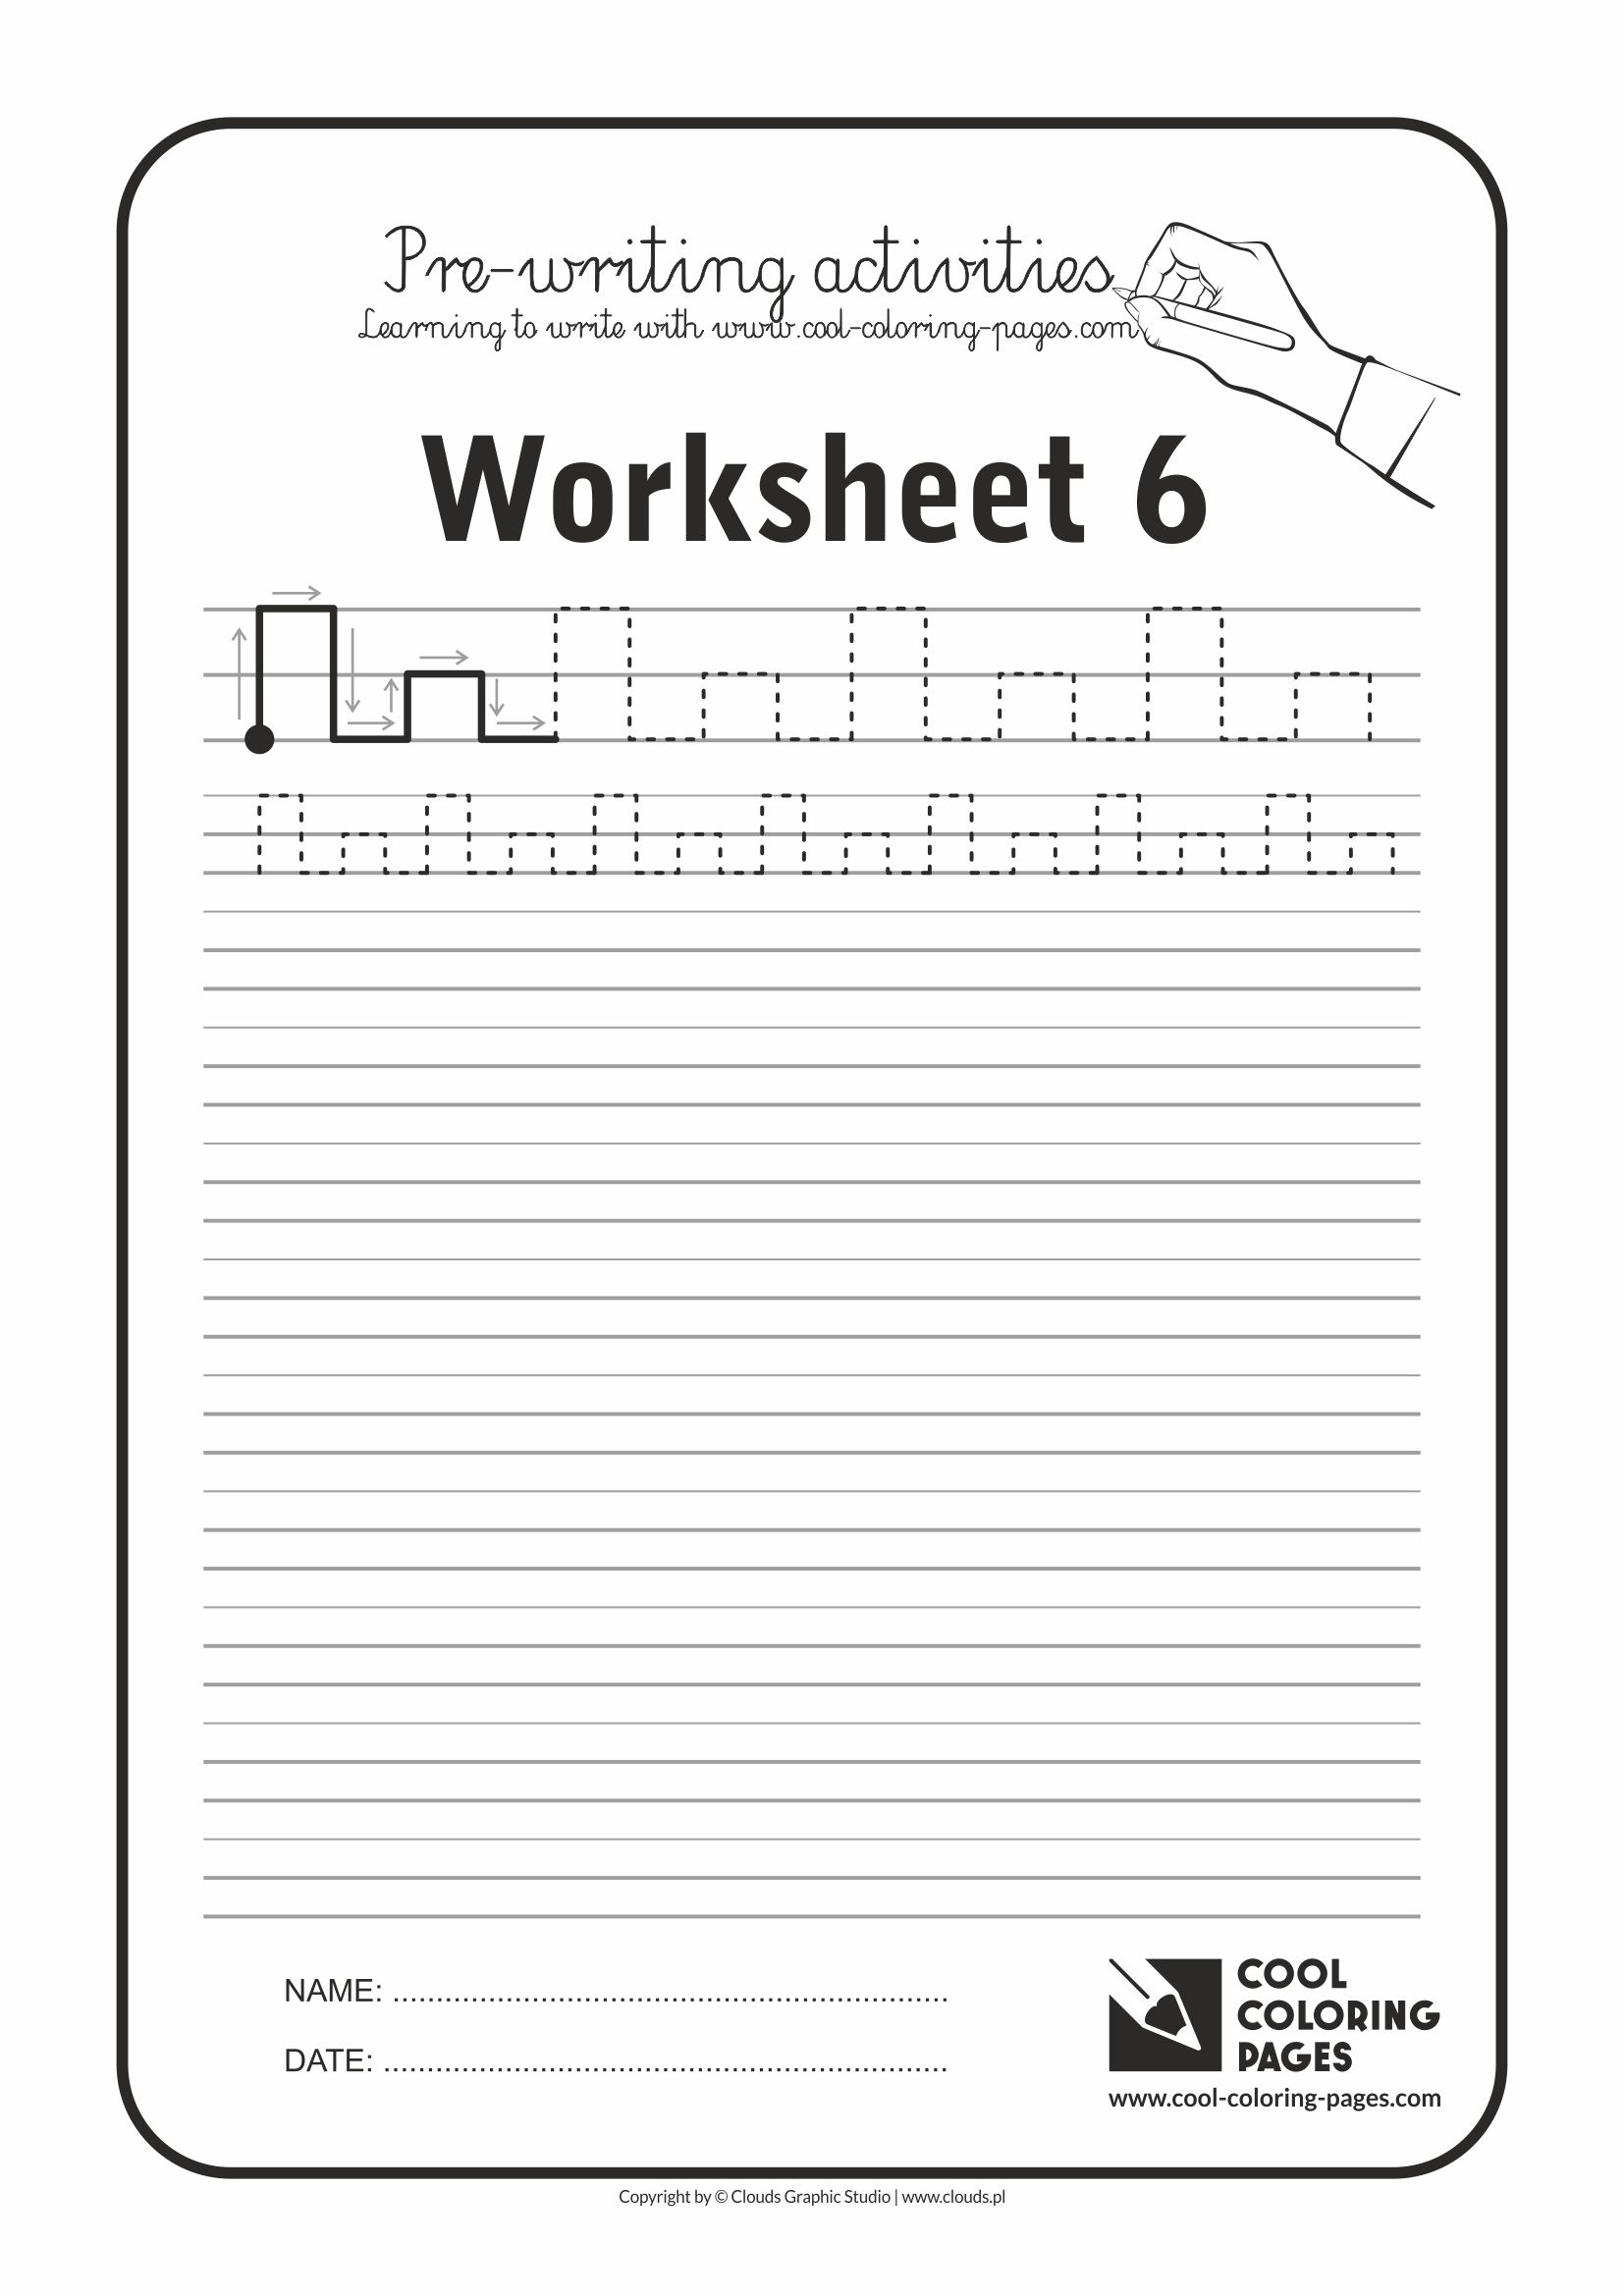 Cool Coloring Pages / Pre-writing activities / Worksheet no.6